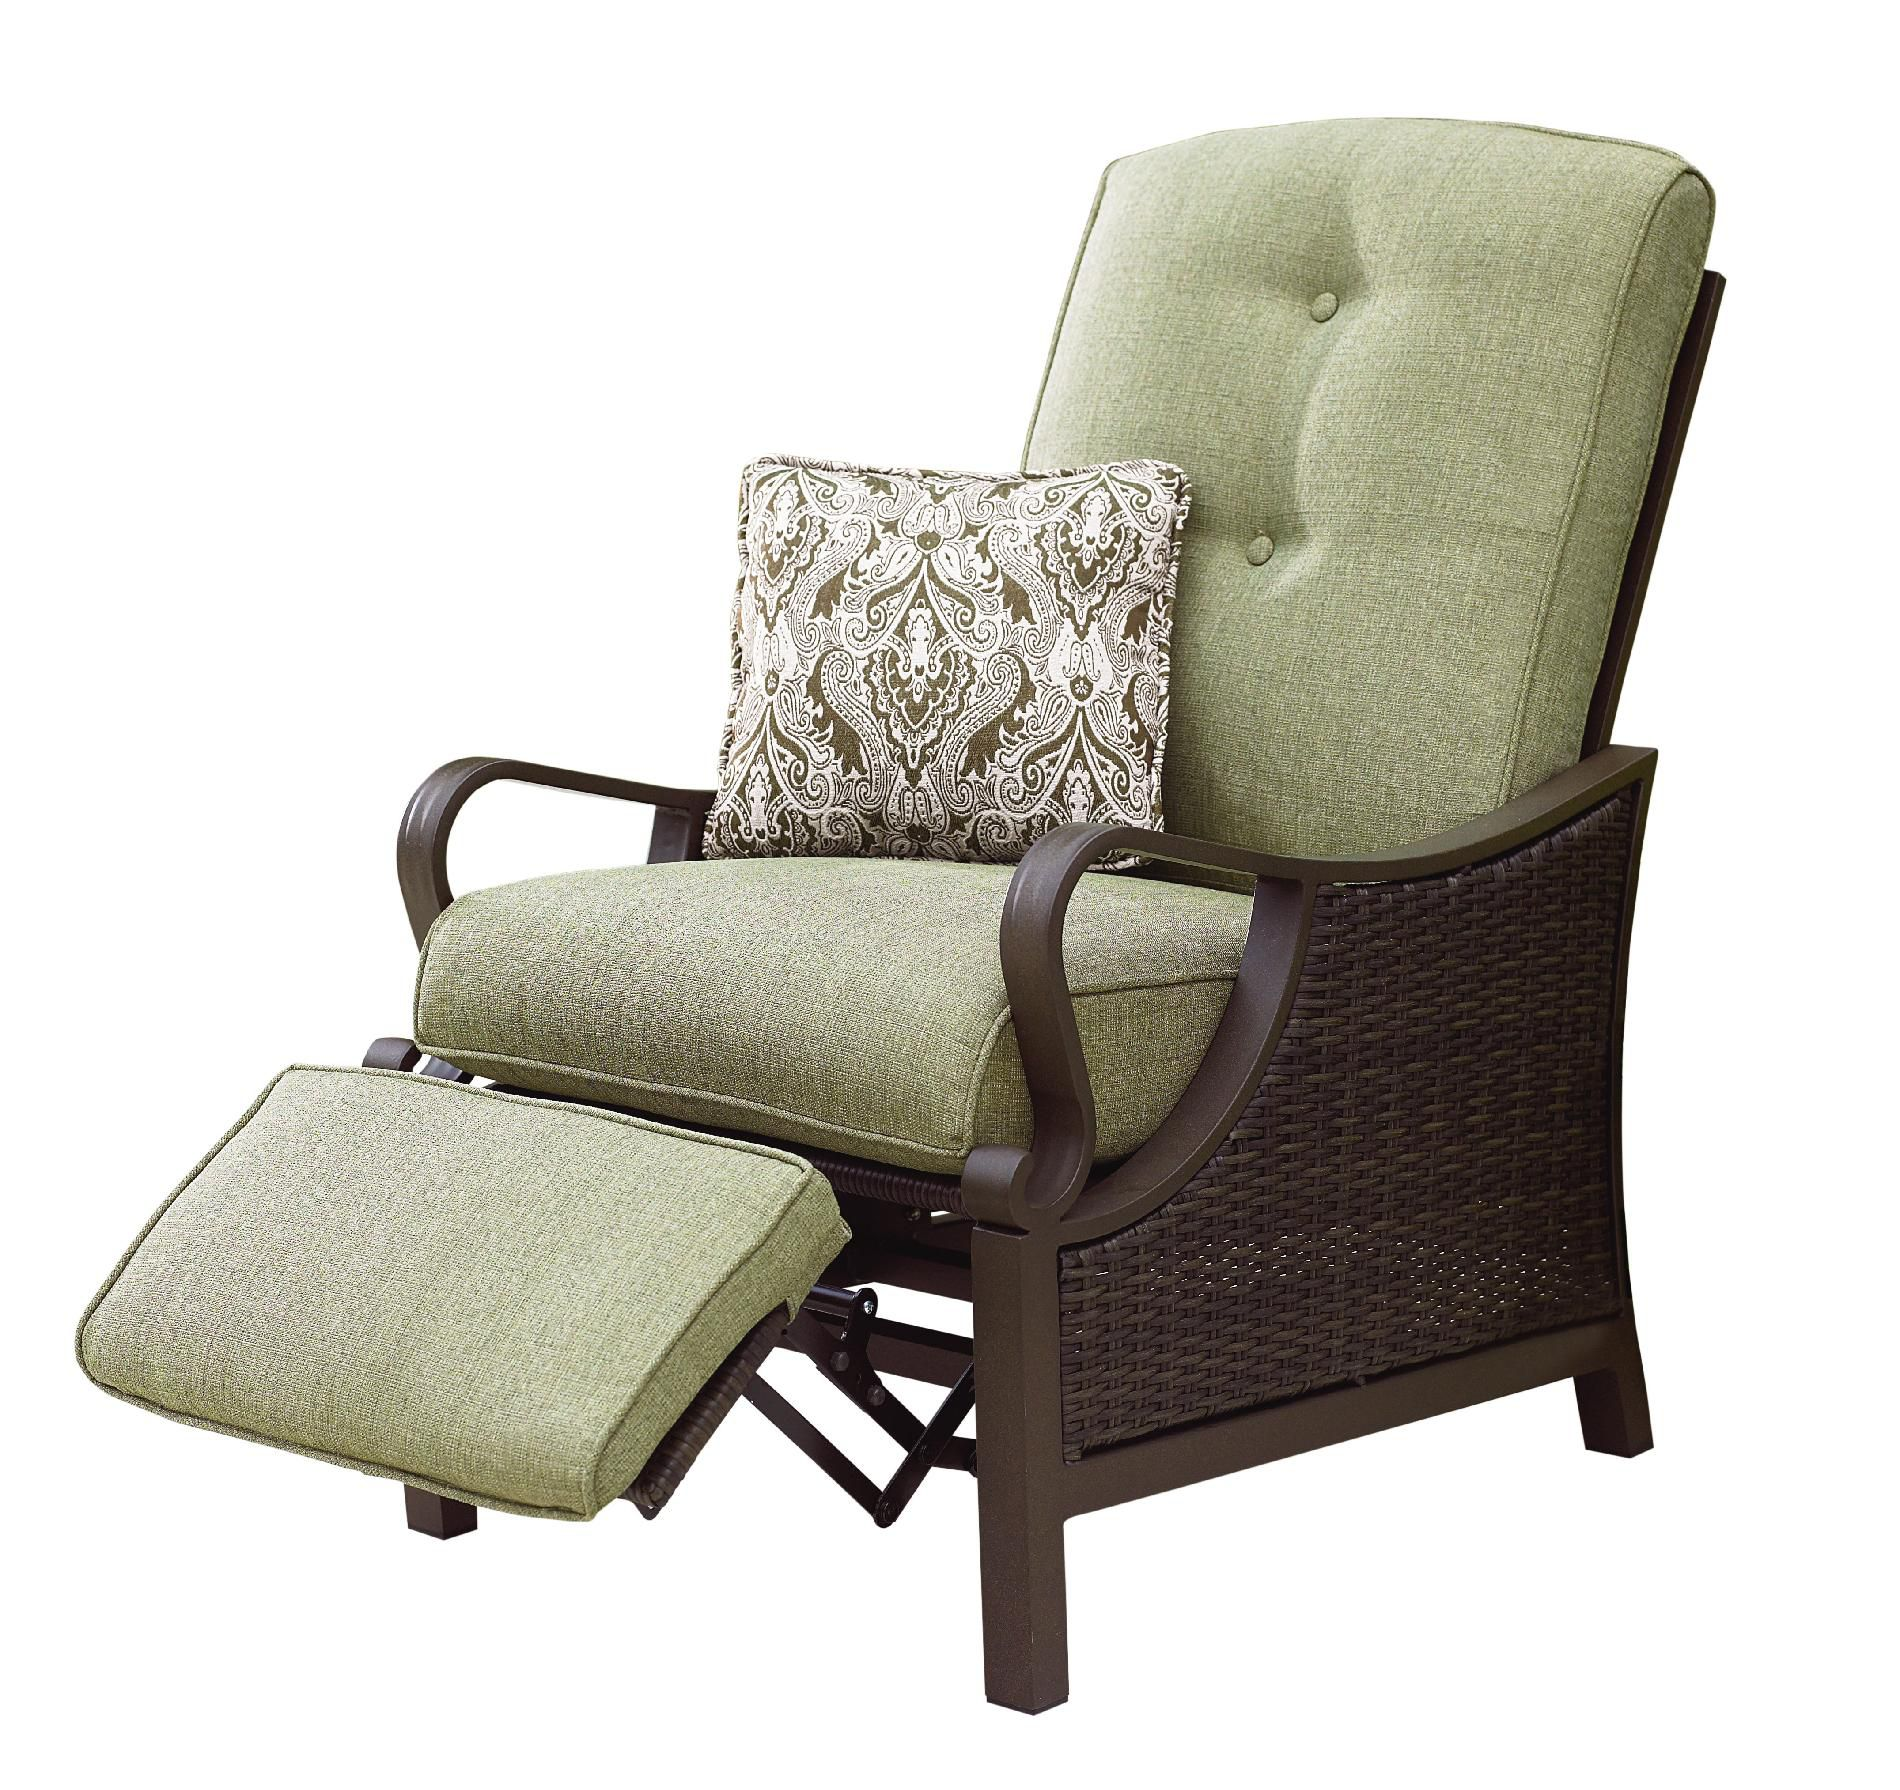 La-Z-Boy Outdoor Peyton Recliner